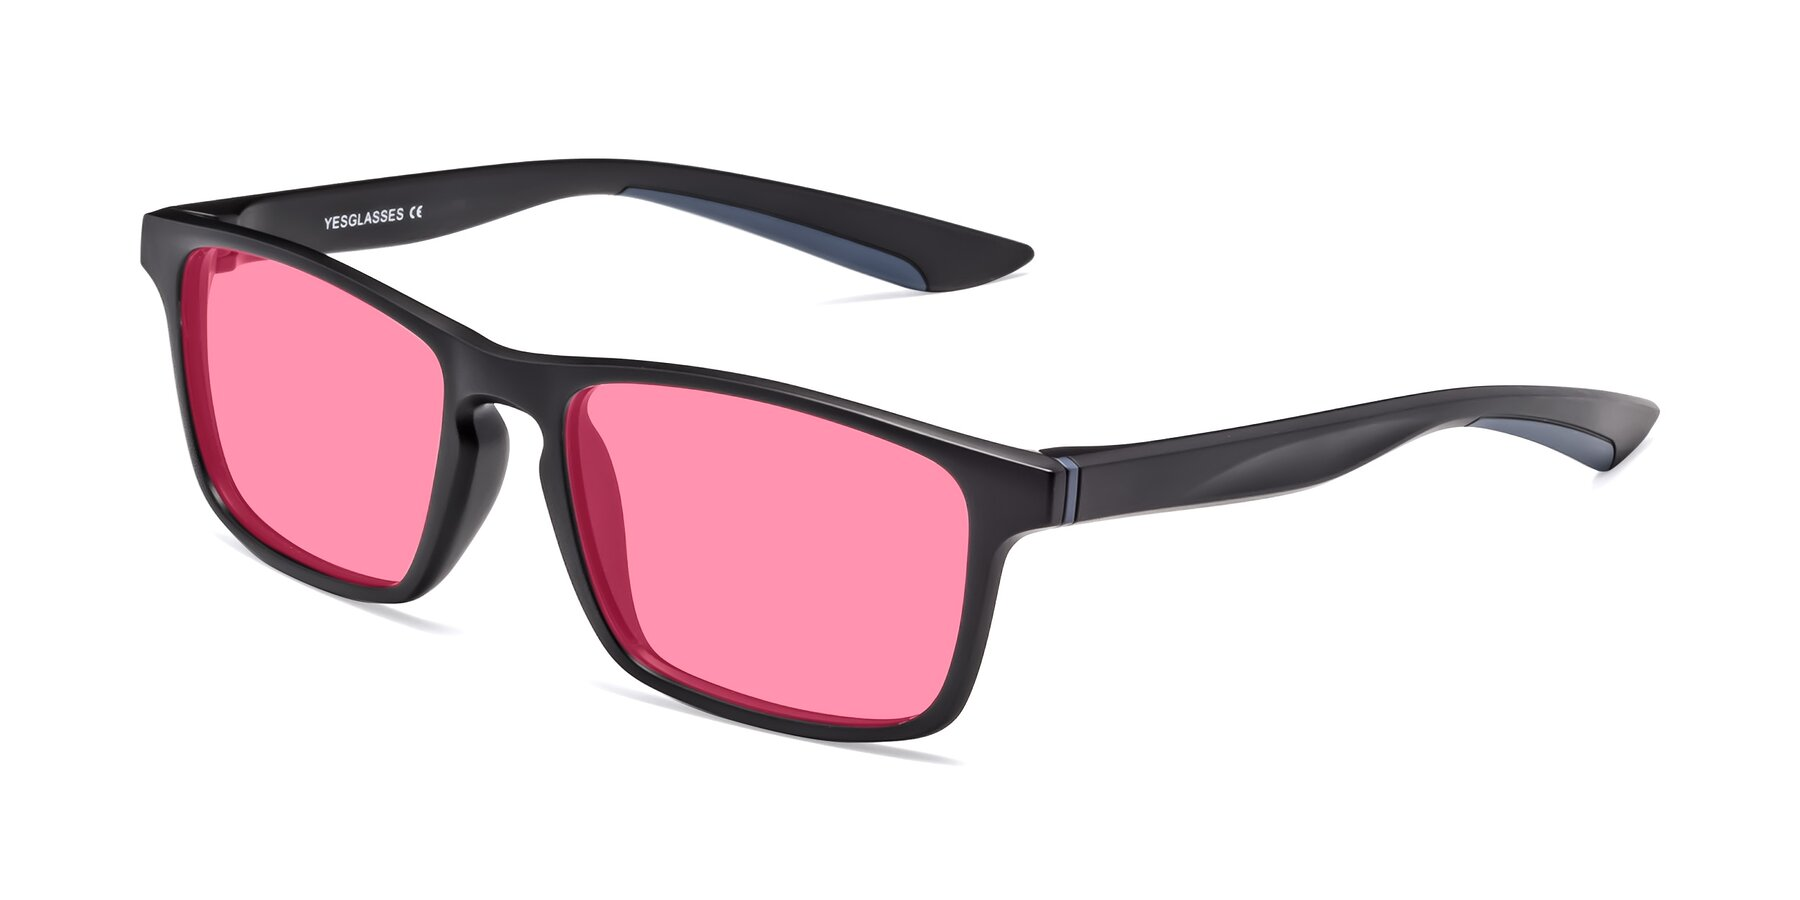 Angle of Passion in Matte Black-Blue with Pink Tinted Lenses